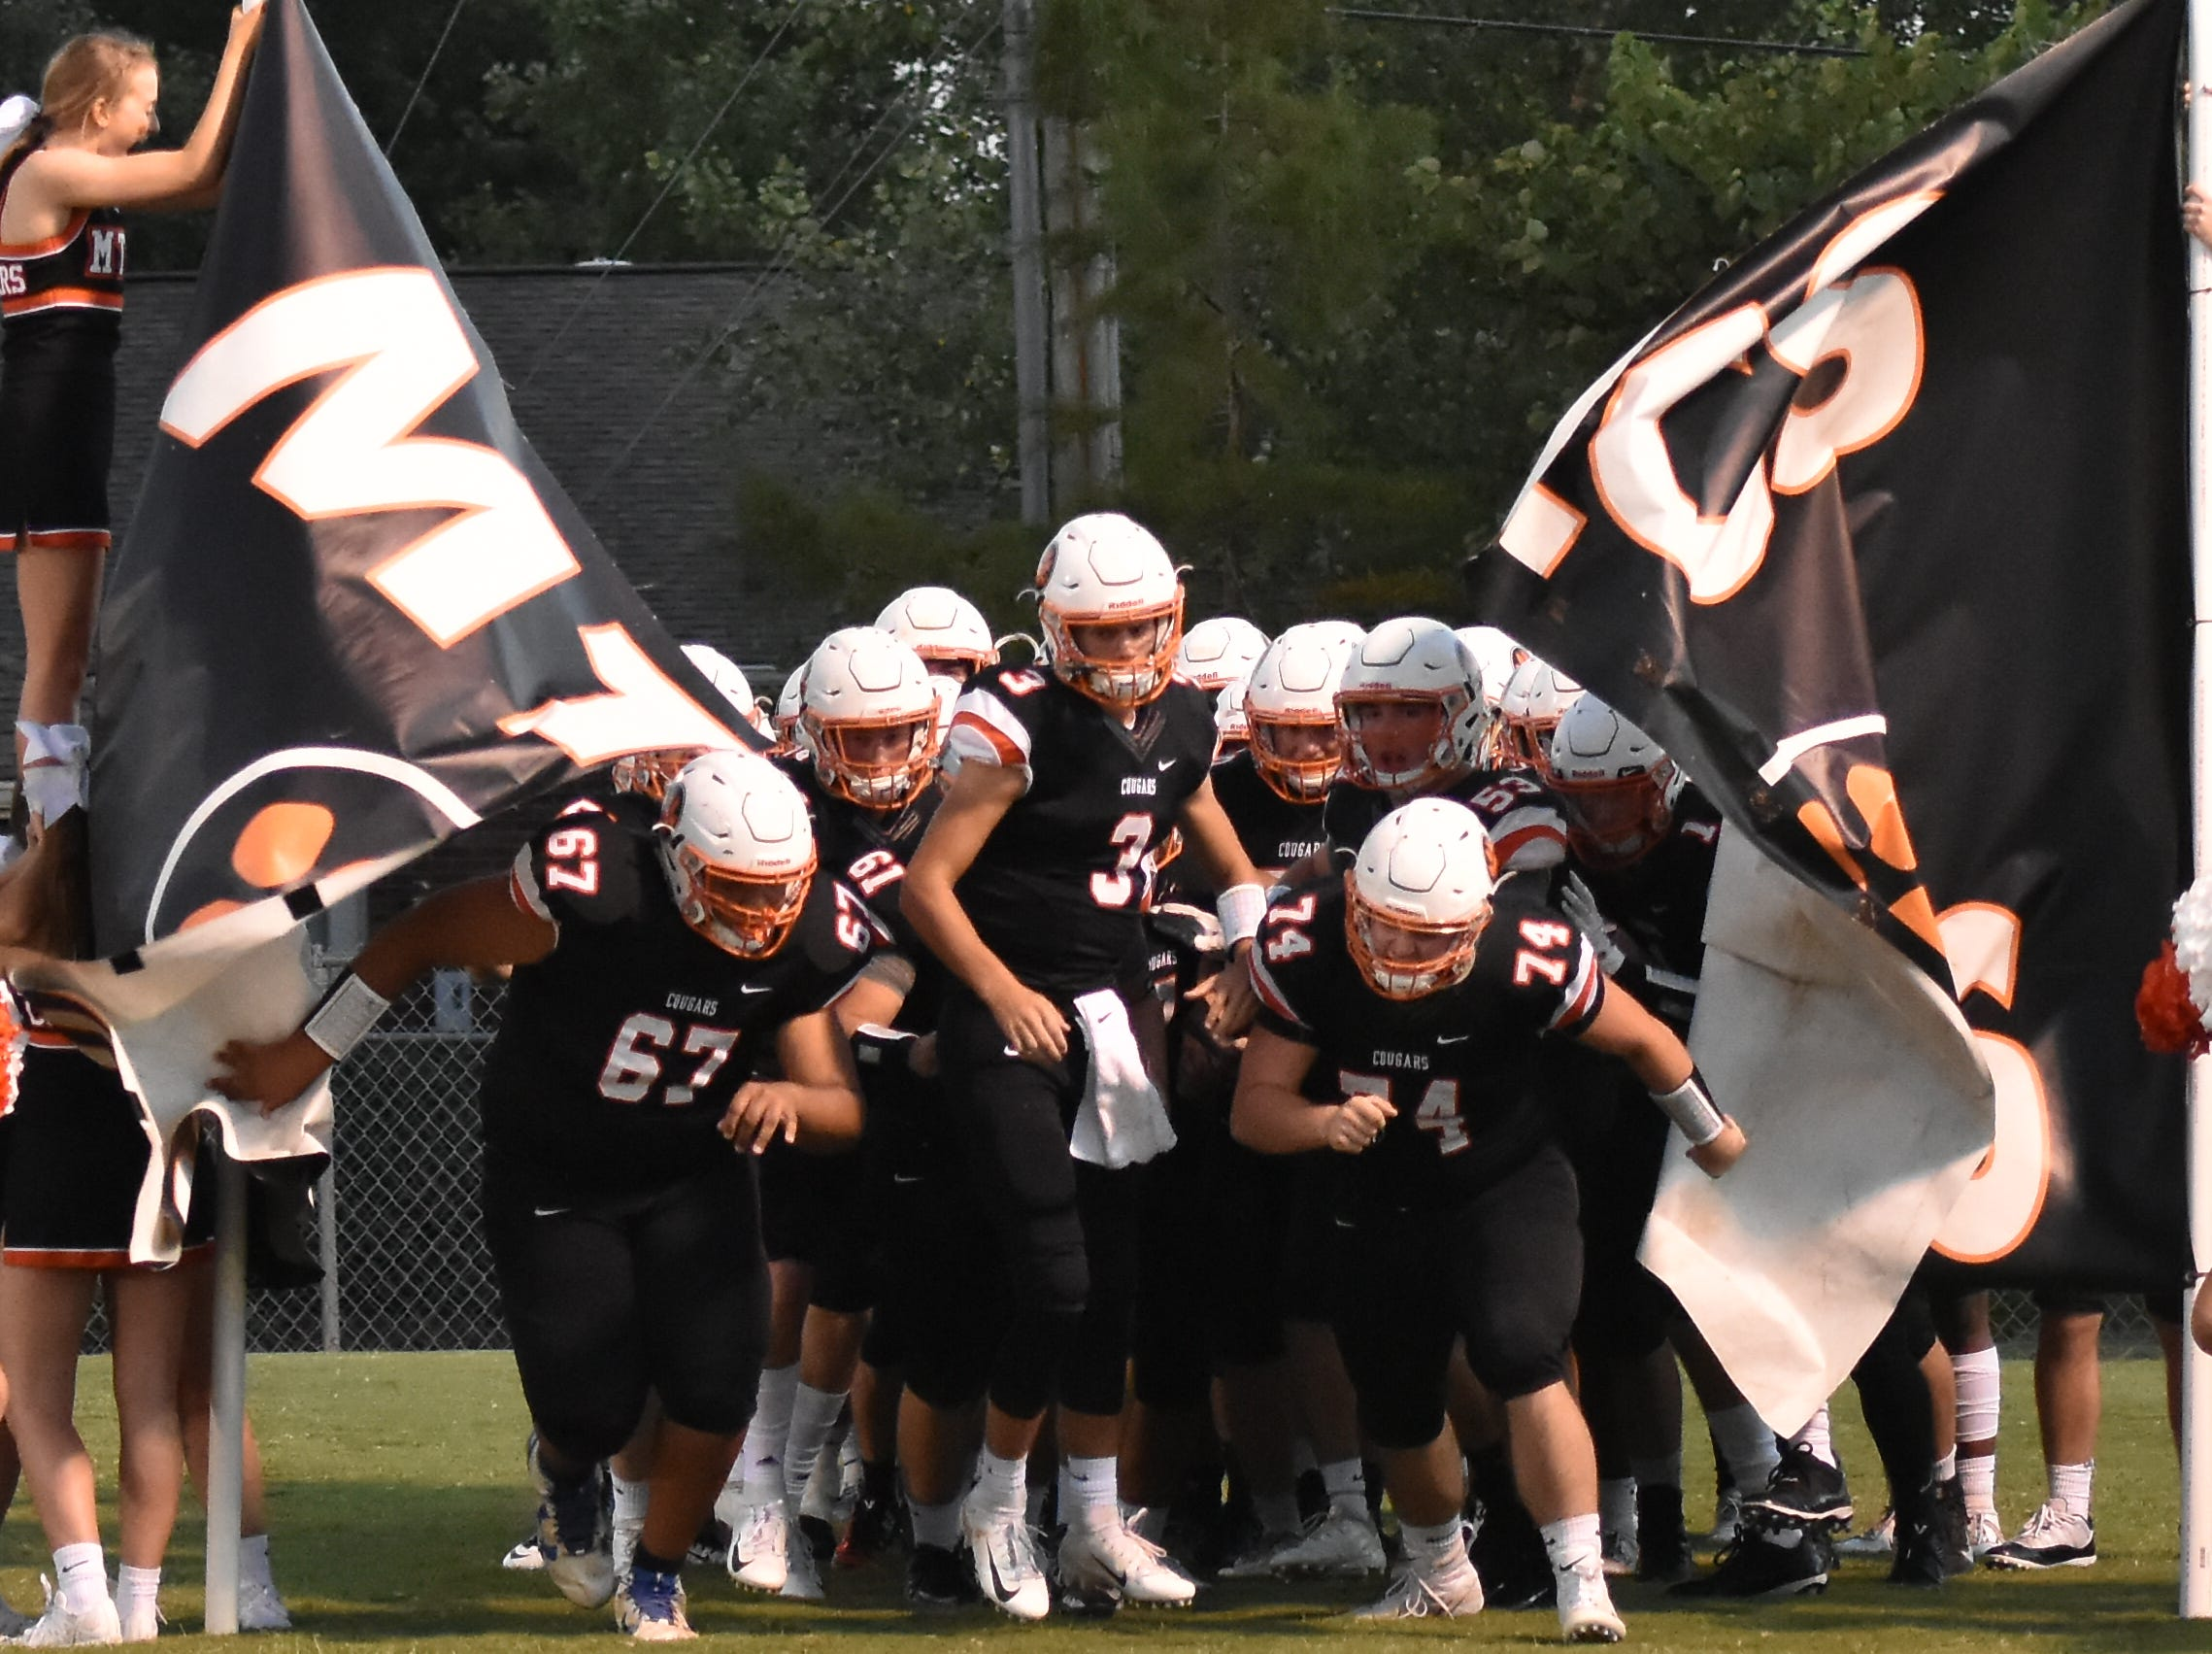 The MTCS Cougars take the field in their homecoming game Friday night against Ezell-Harding.